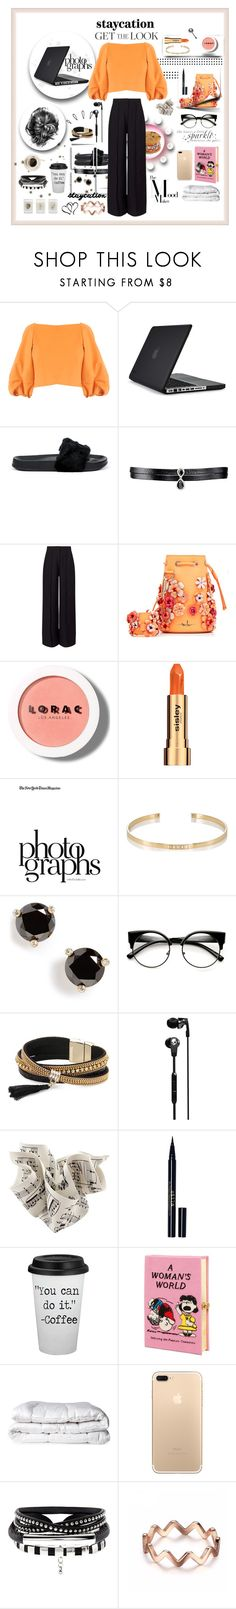 """staycation💅💭"" by olivia204 ❤ liked on Polyvore featuring TIBI, Speck, Puma, Fallon, Miss Selfridge, Marina Hoermanseder, LORAC, Sisley, Valentino and Ileana Makri"